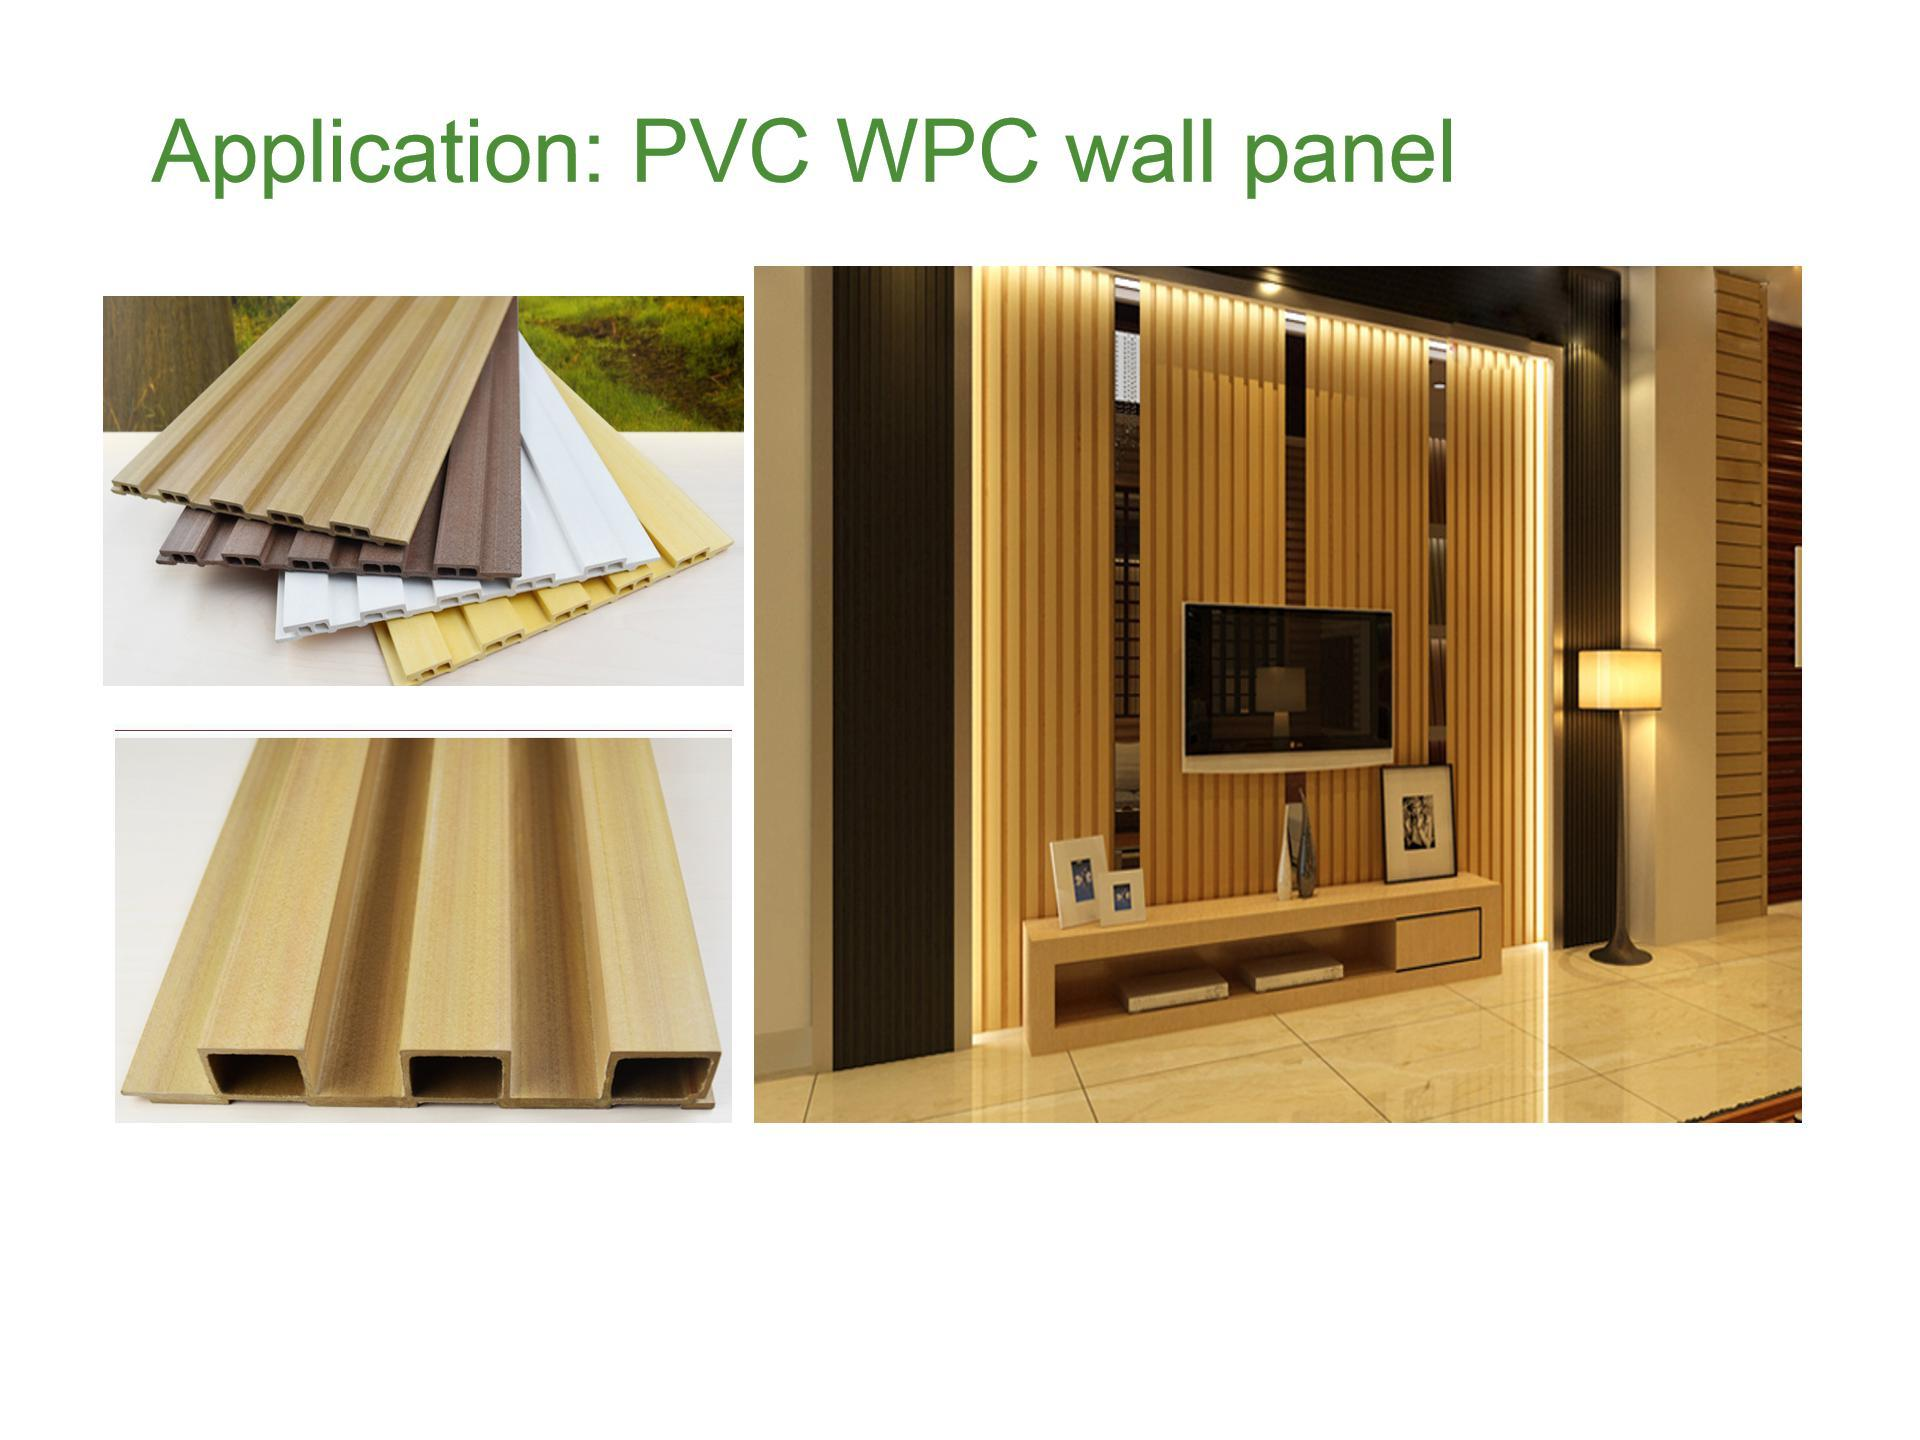 PVC WPC wall panel with color